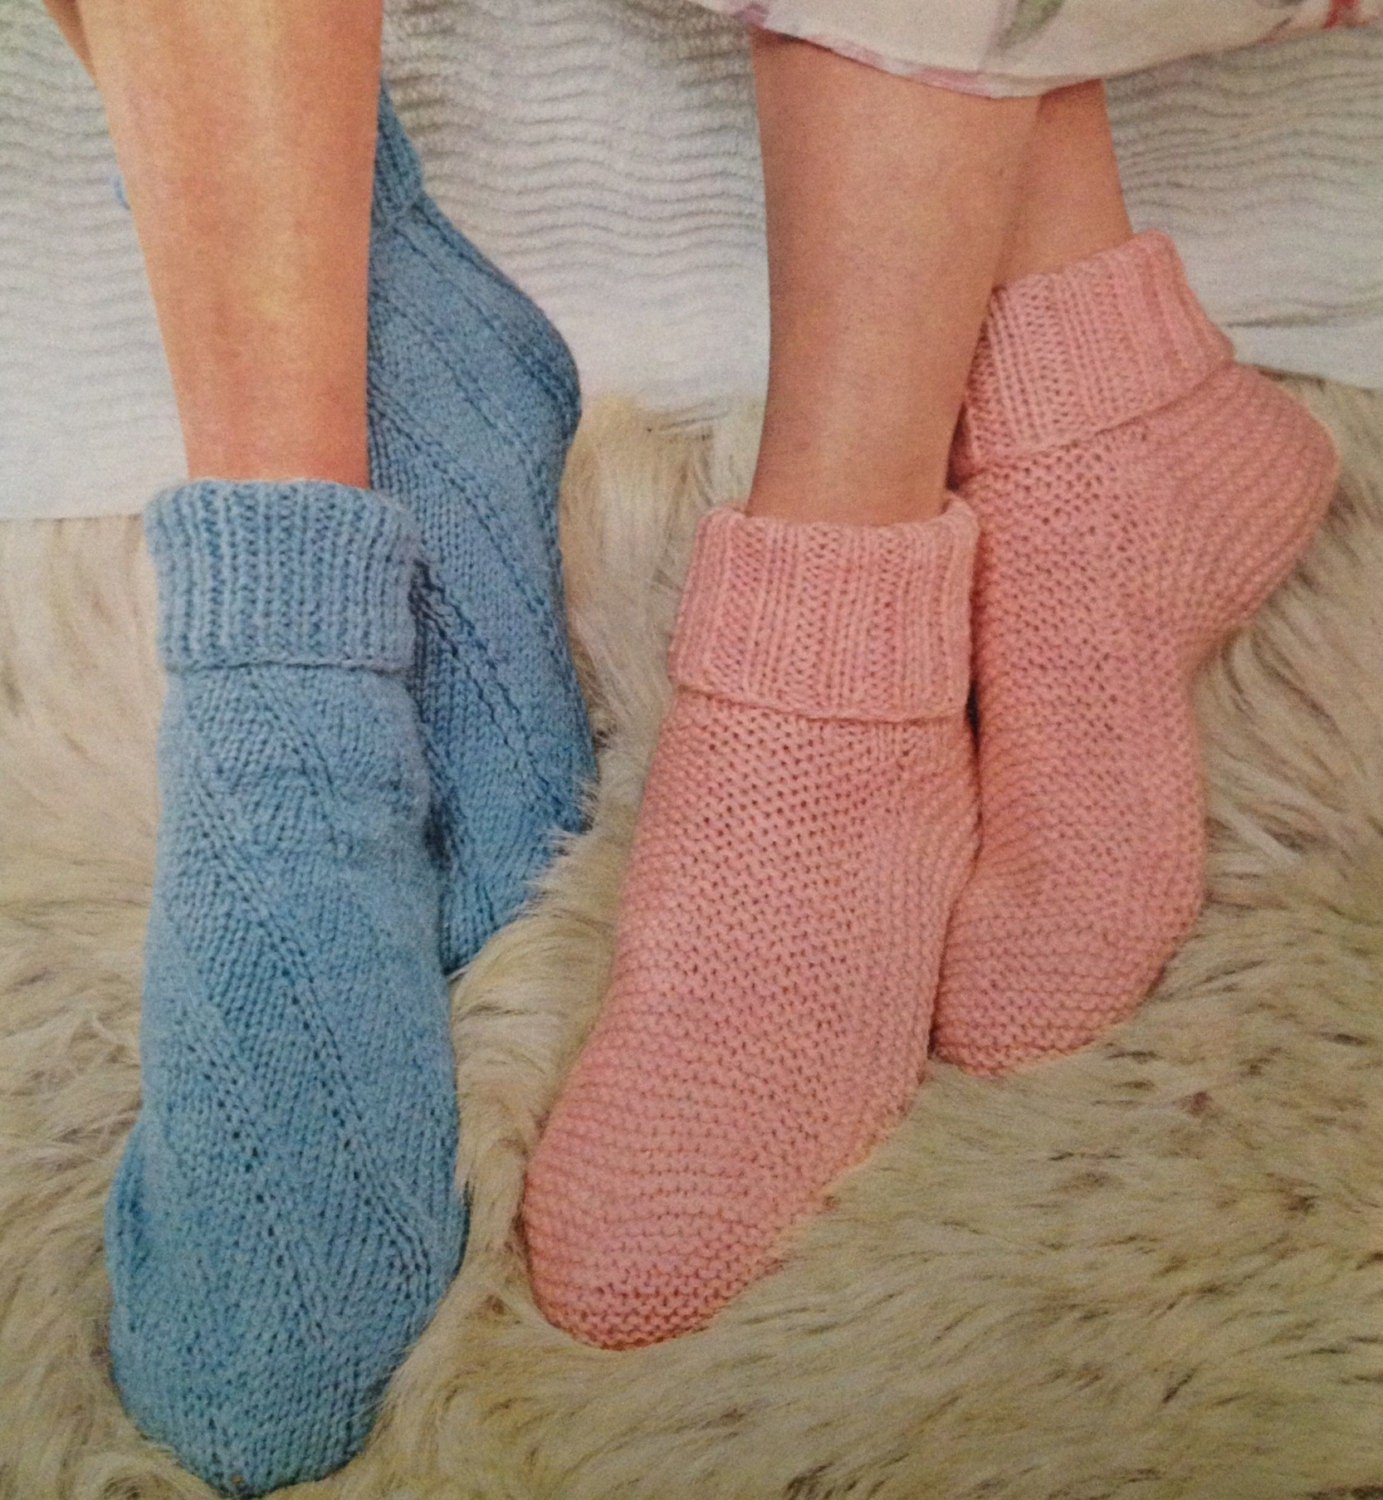 Double Knit Sock Pattern : vintage knitting pattern for ladies bed socks in double knit